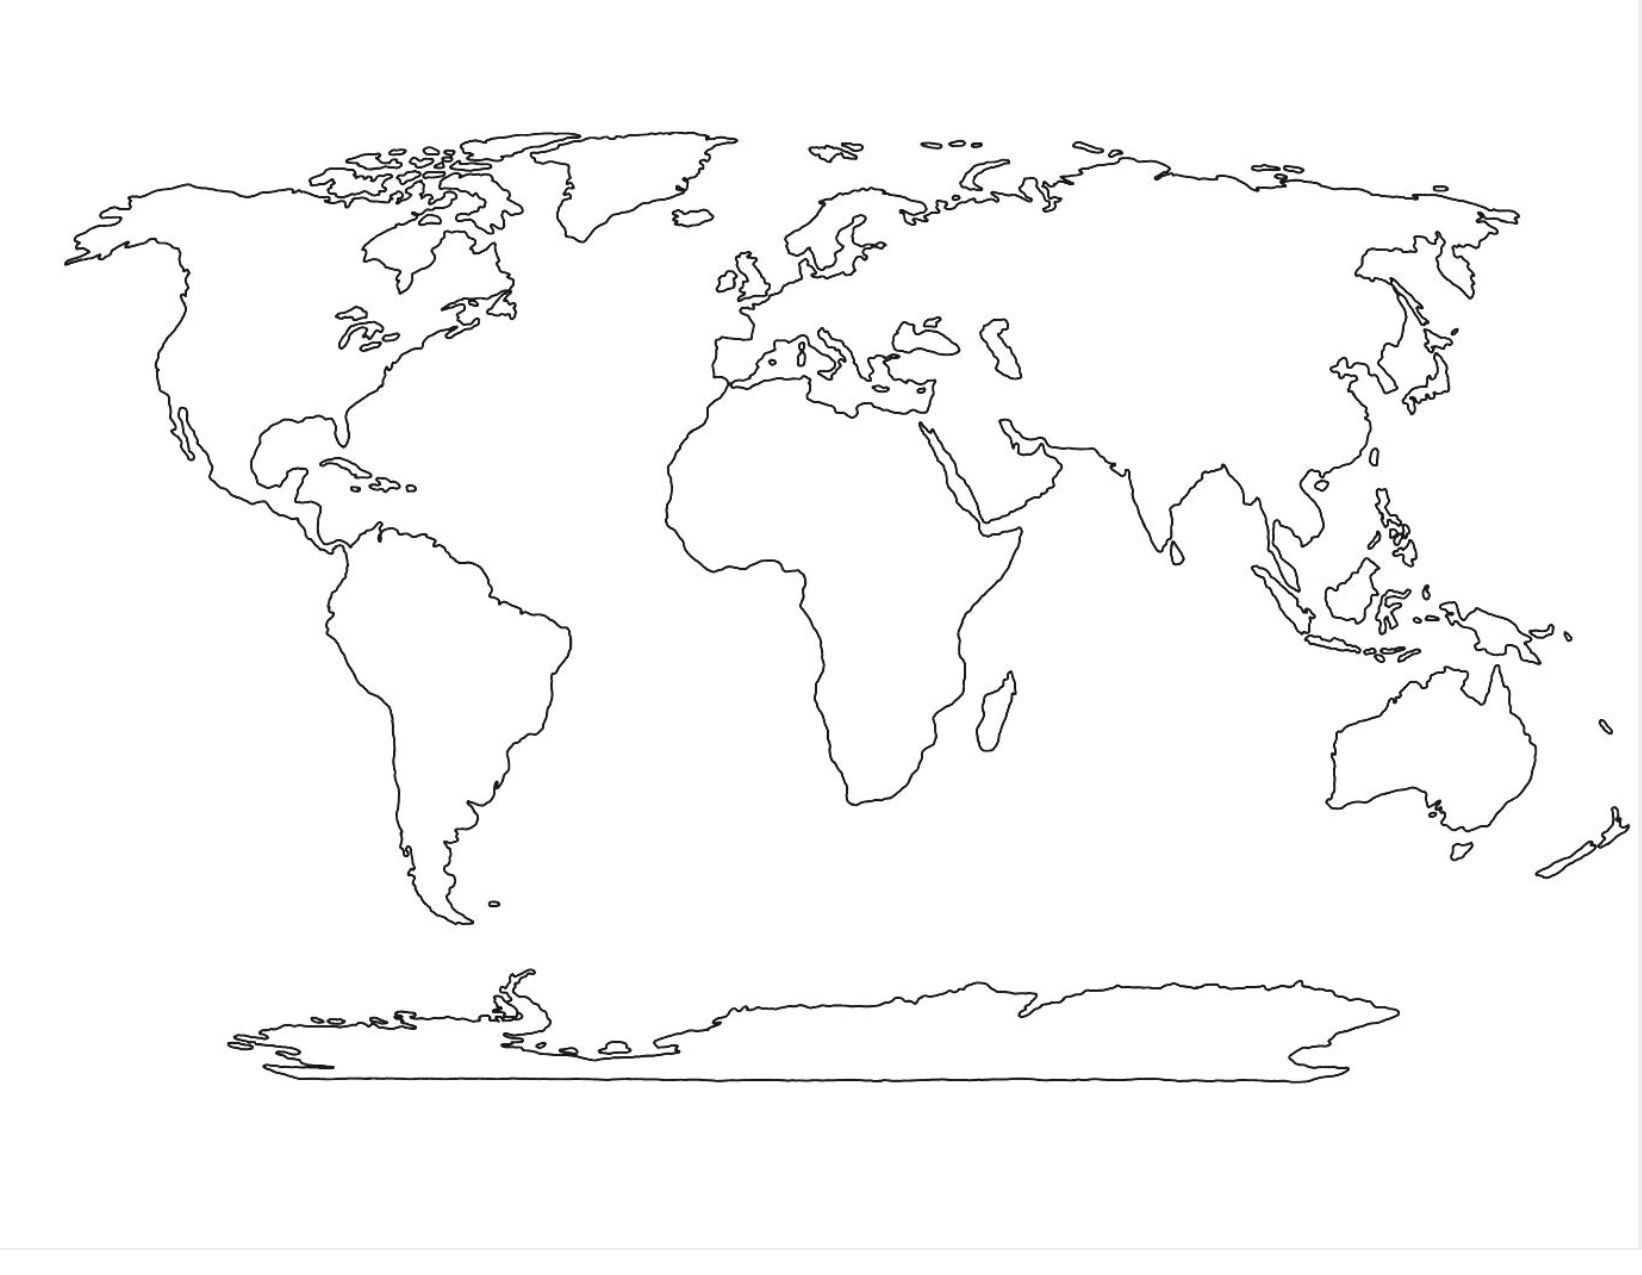 Amazing World Map Template 4 | World map printable, World ...